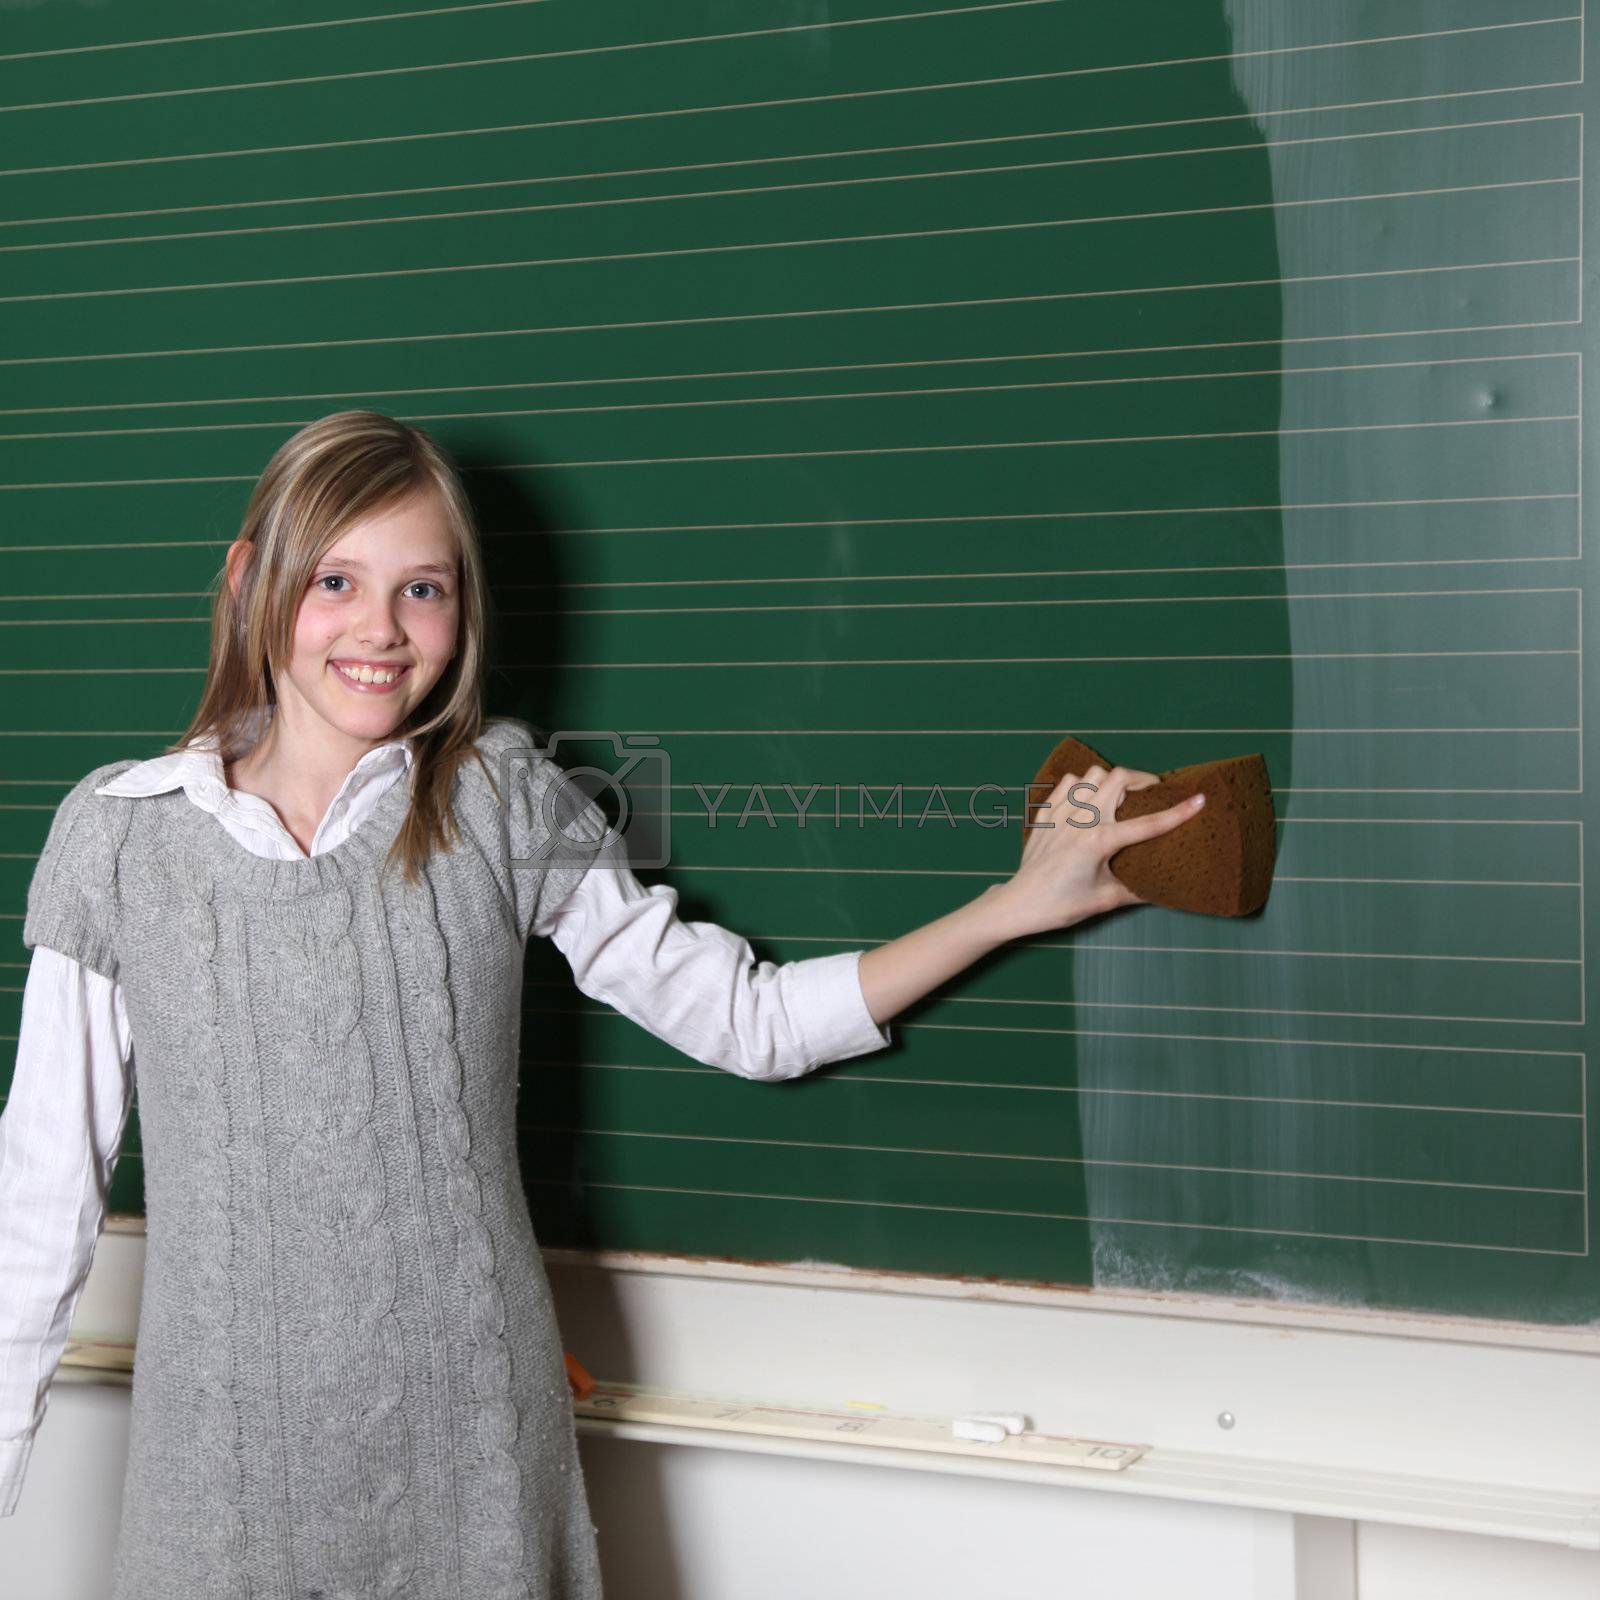 School girls at the blackboard. She wipes the table and smiles - Copy Space